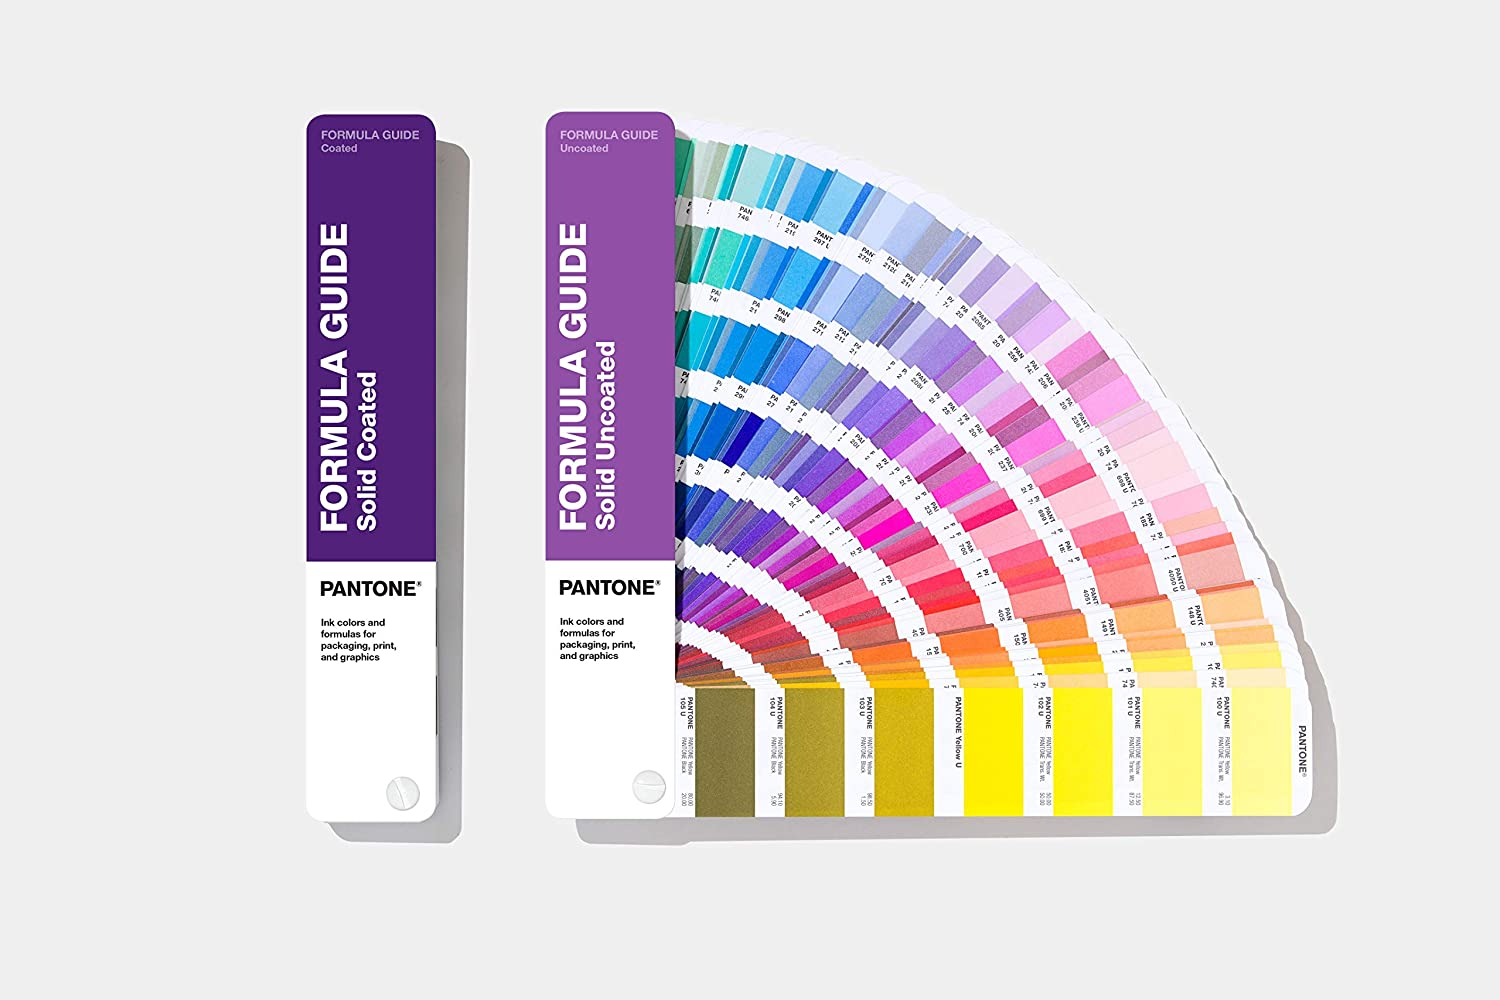 Amazon Com Pantone Formula Guide Set And Color Book Gp1601a Latest Edition 294 New Colors Coated And Uncoated Color Swatch Book With 2 161 Spot Colors Home Improvement